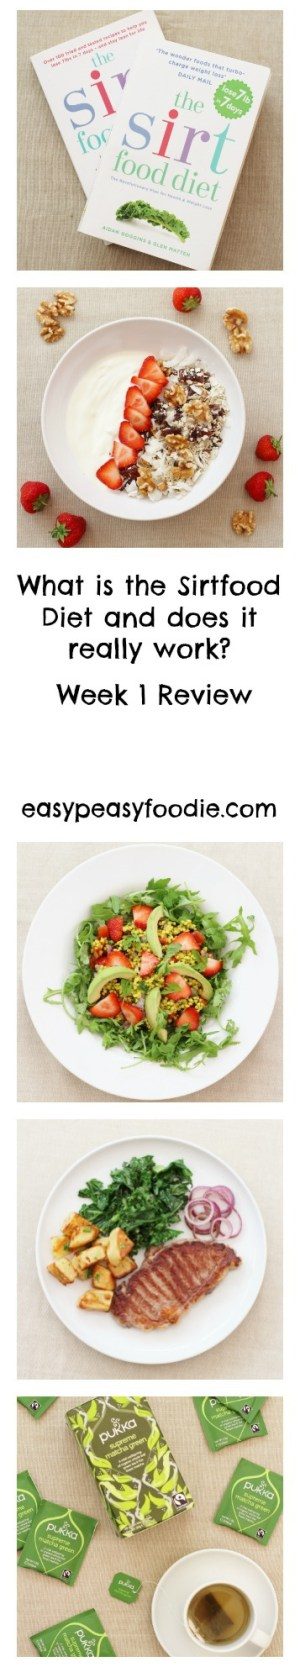 What is the Sirtfood Diet and does it really work? Week 1 Review